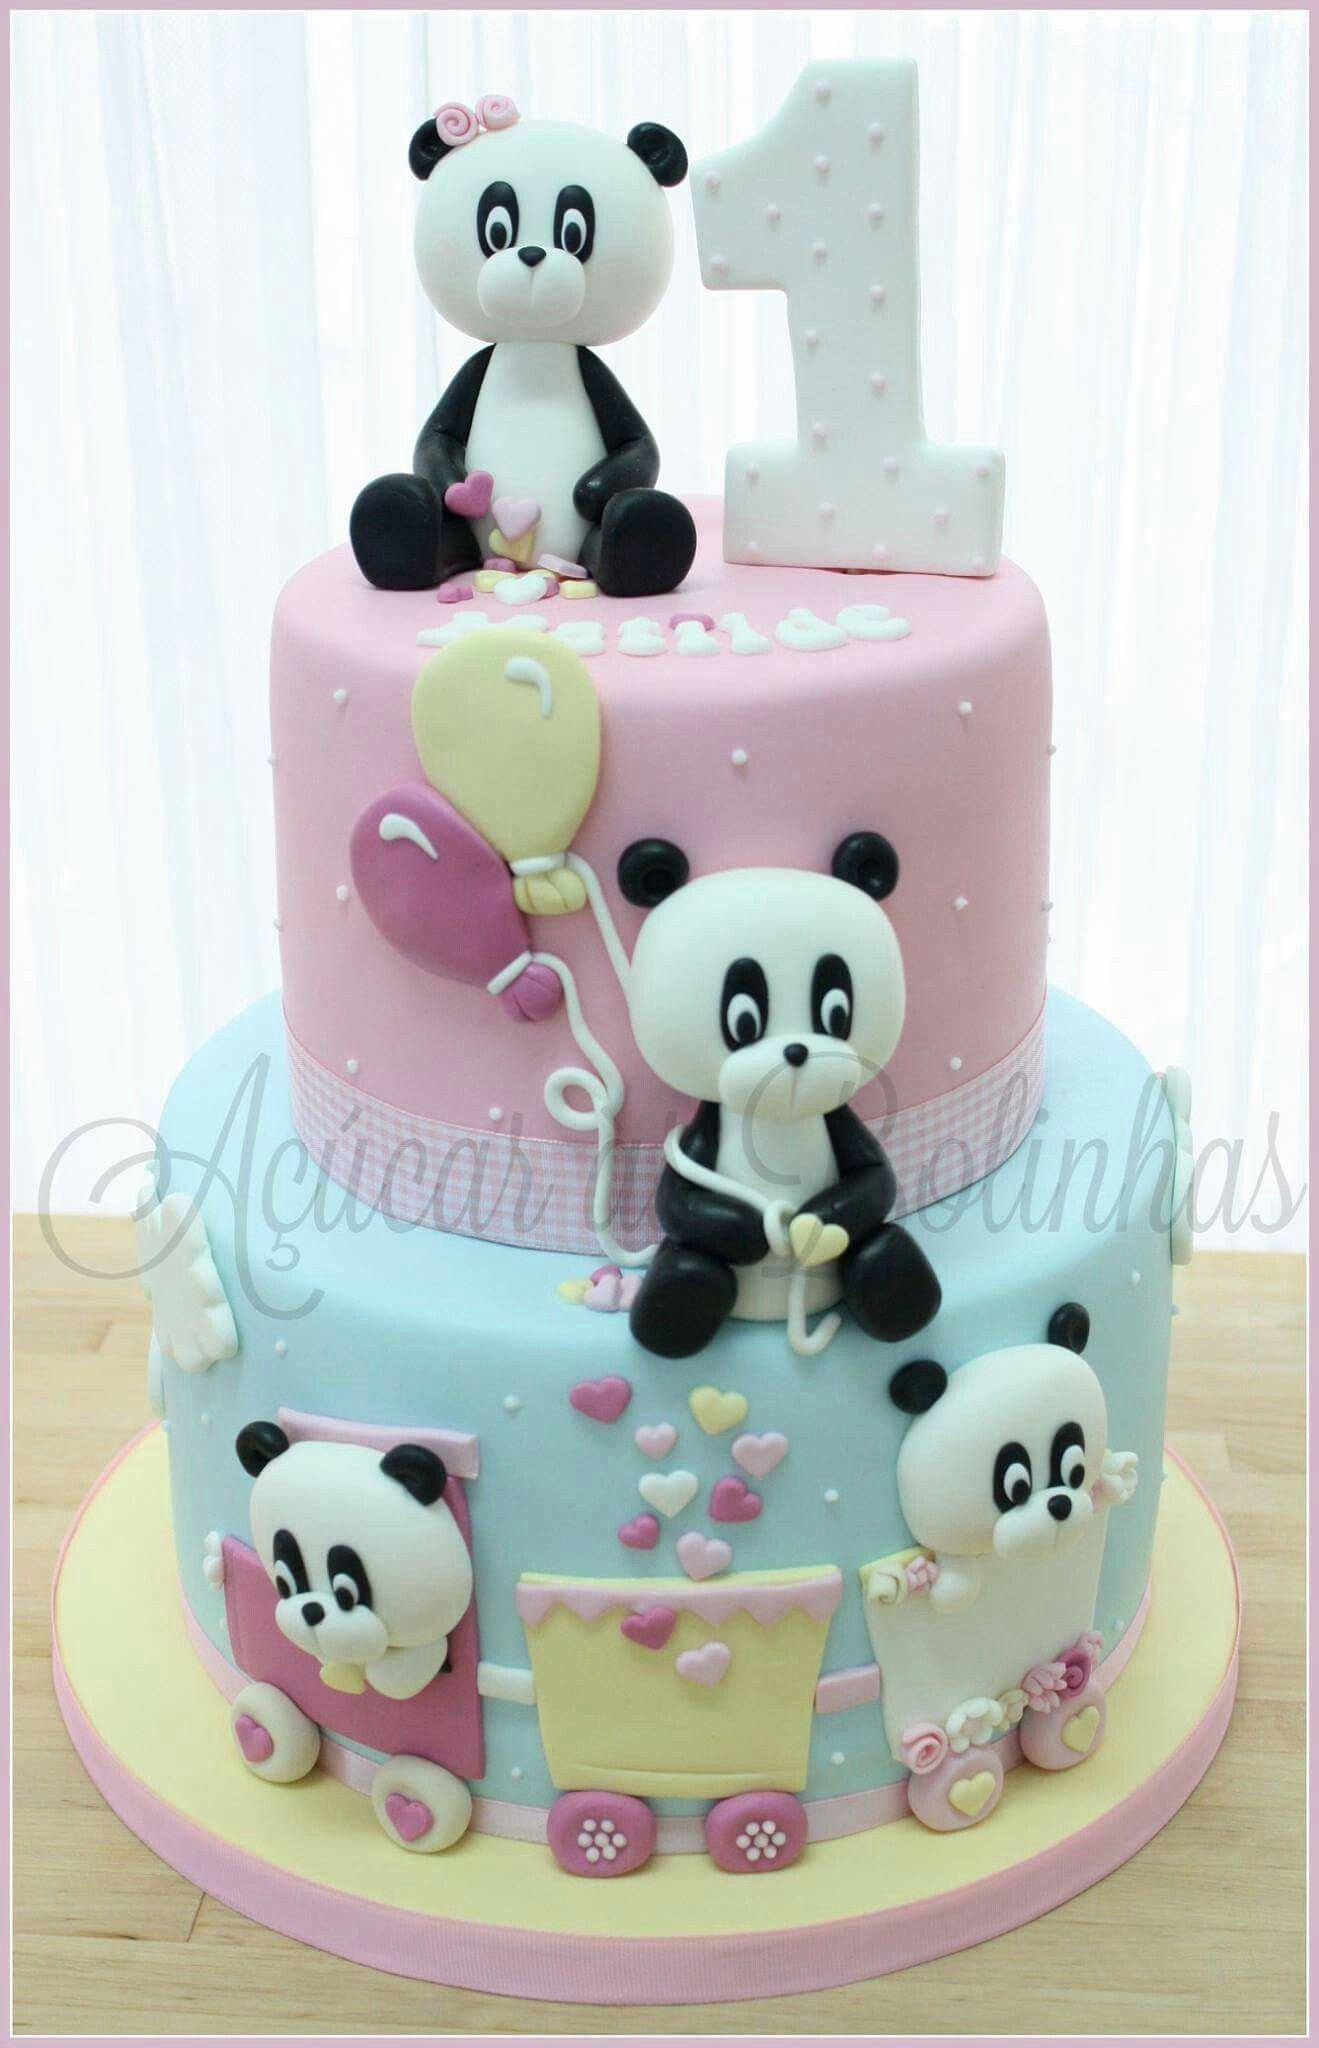 Birthday Cake Panda Cakes 1st Birthday Cakes Girl Cakes